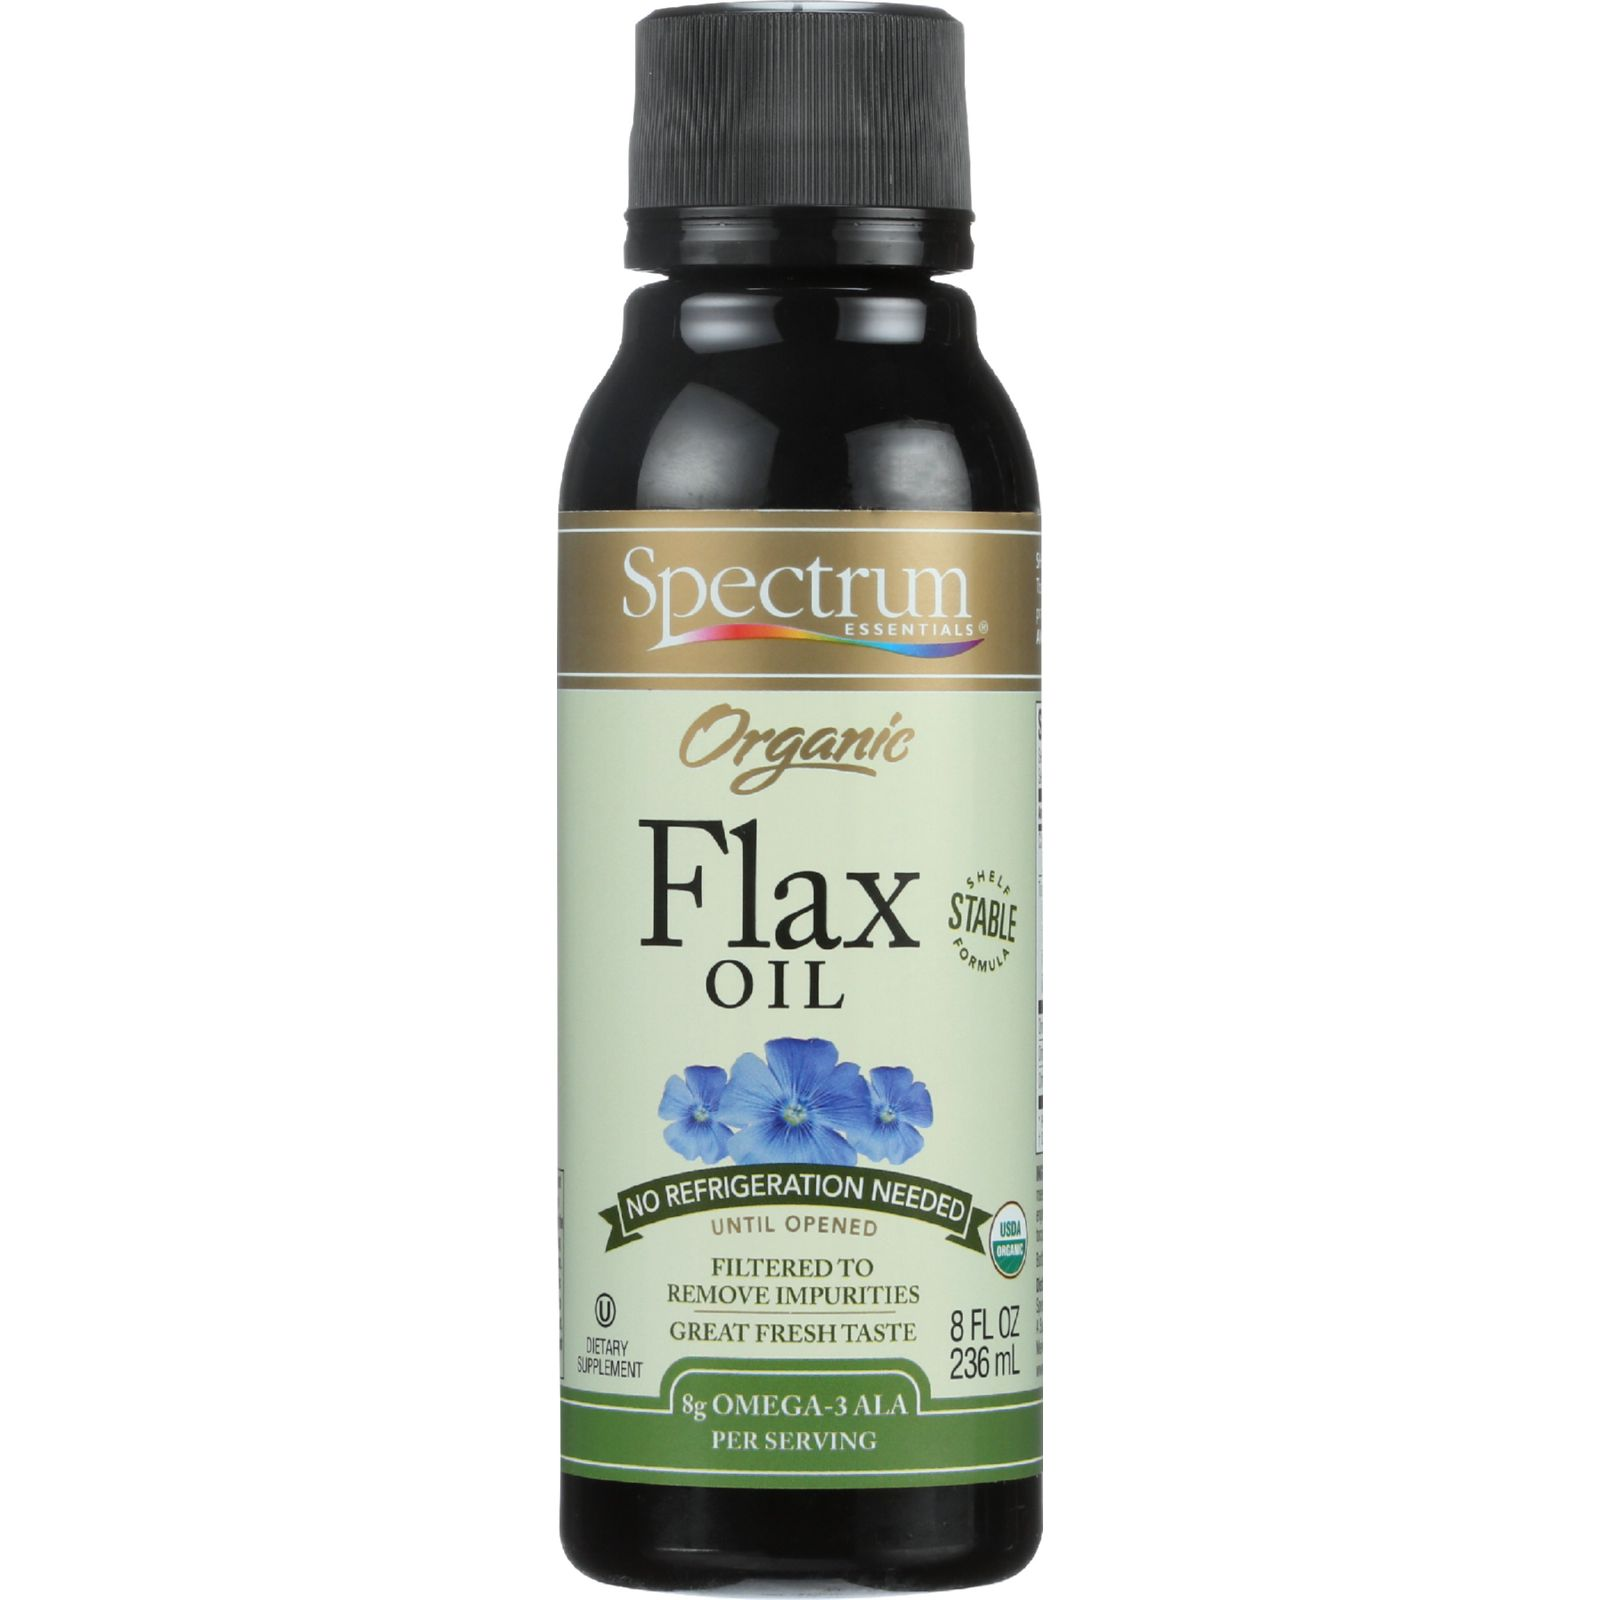 Organic Flax Oil; Shelf Stable